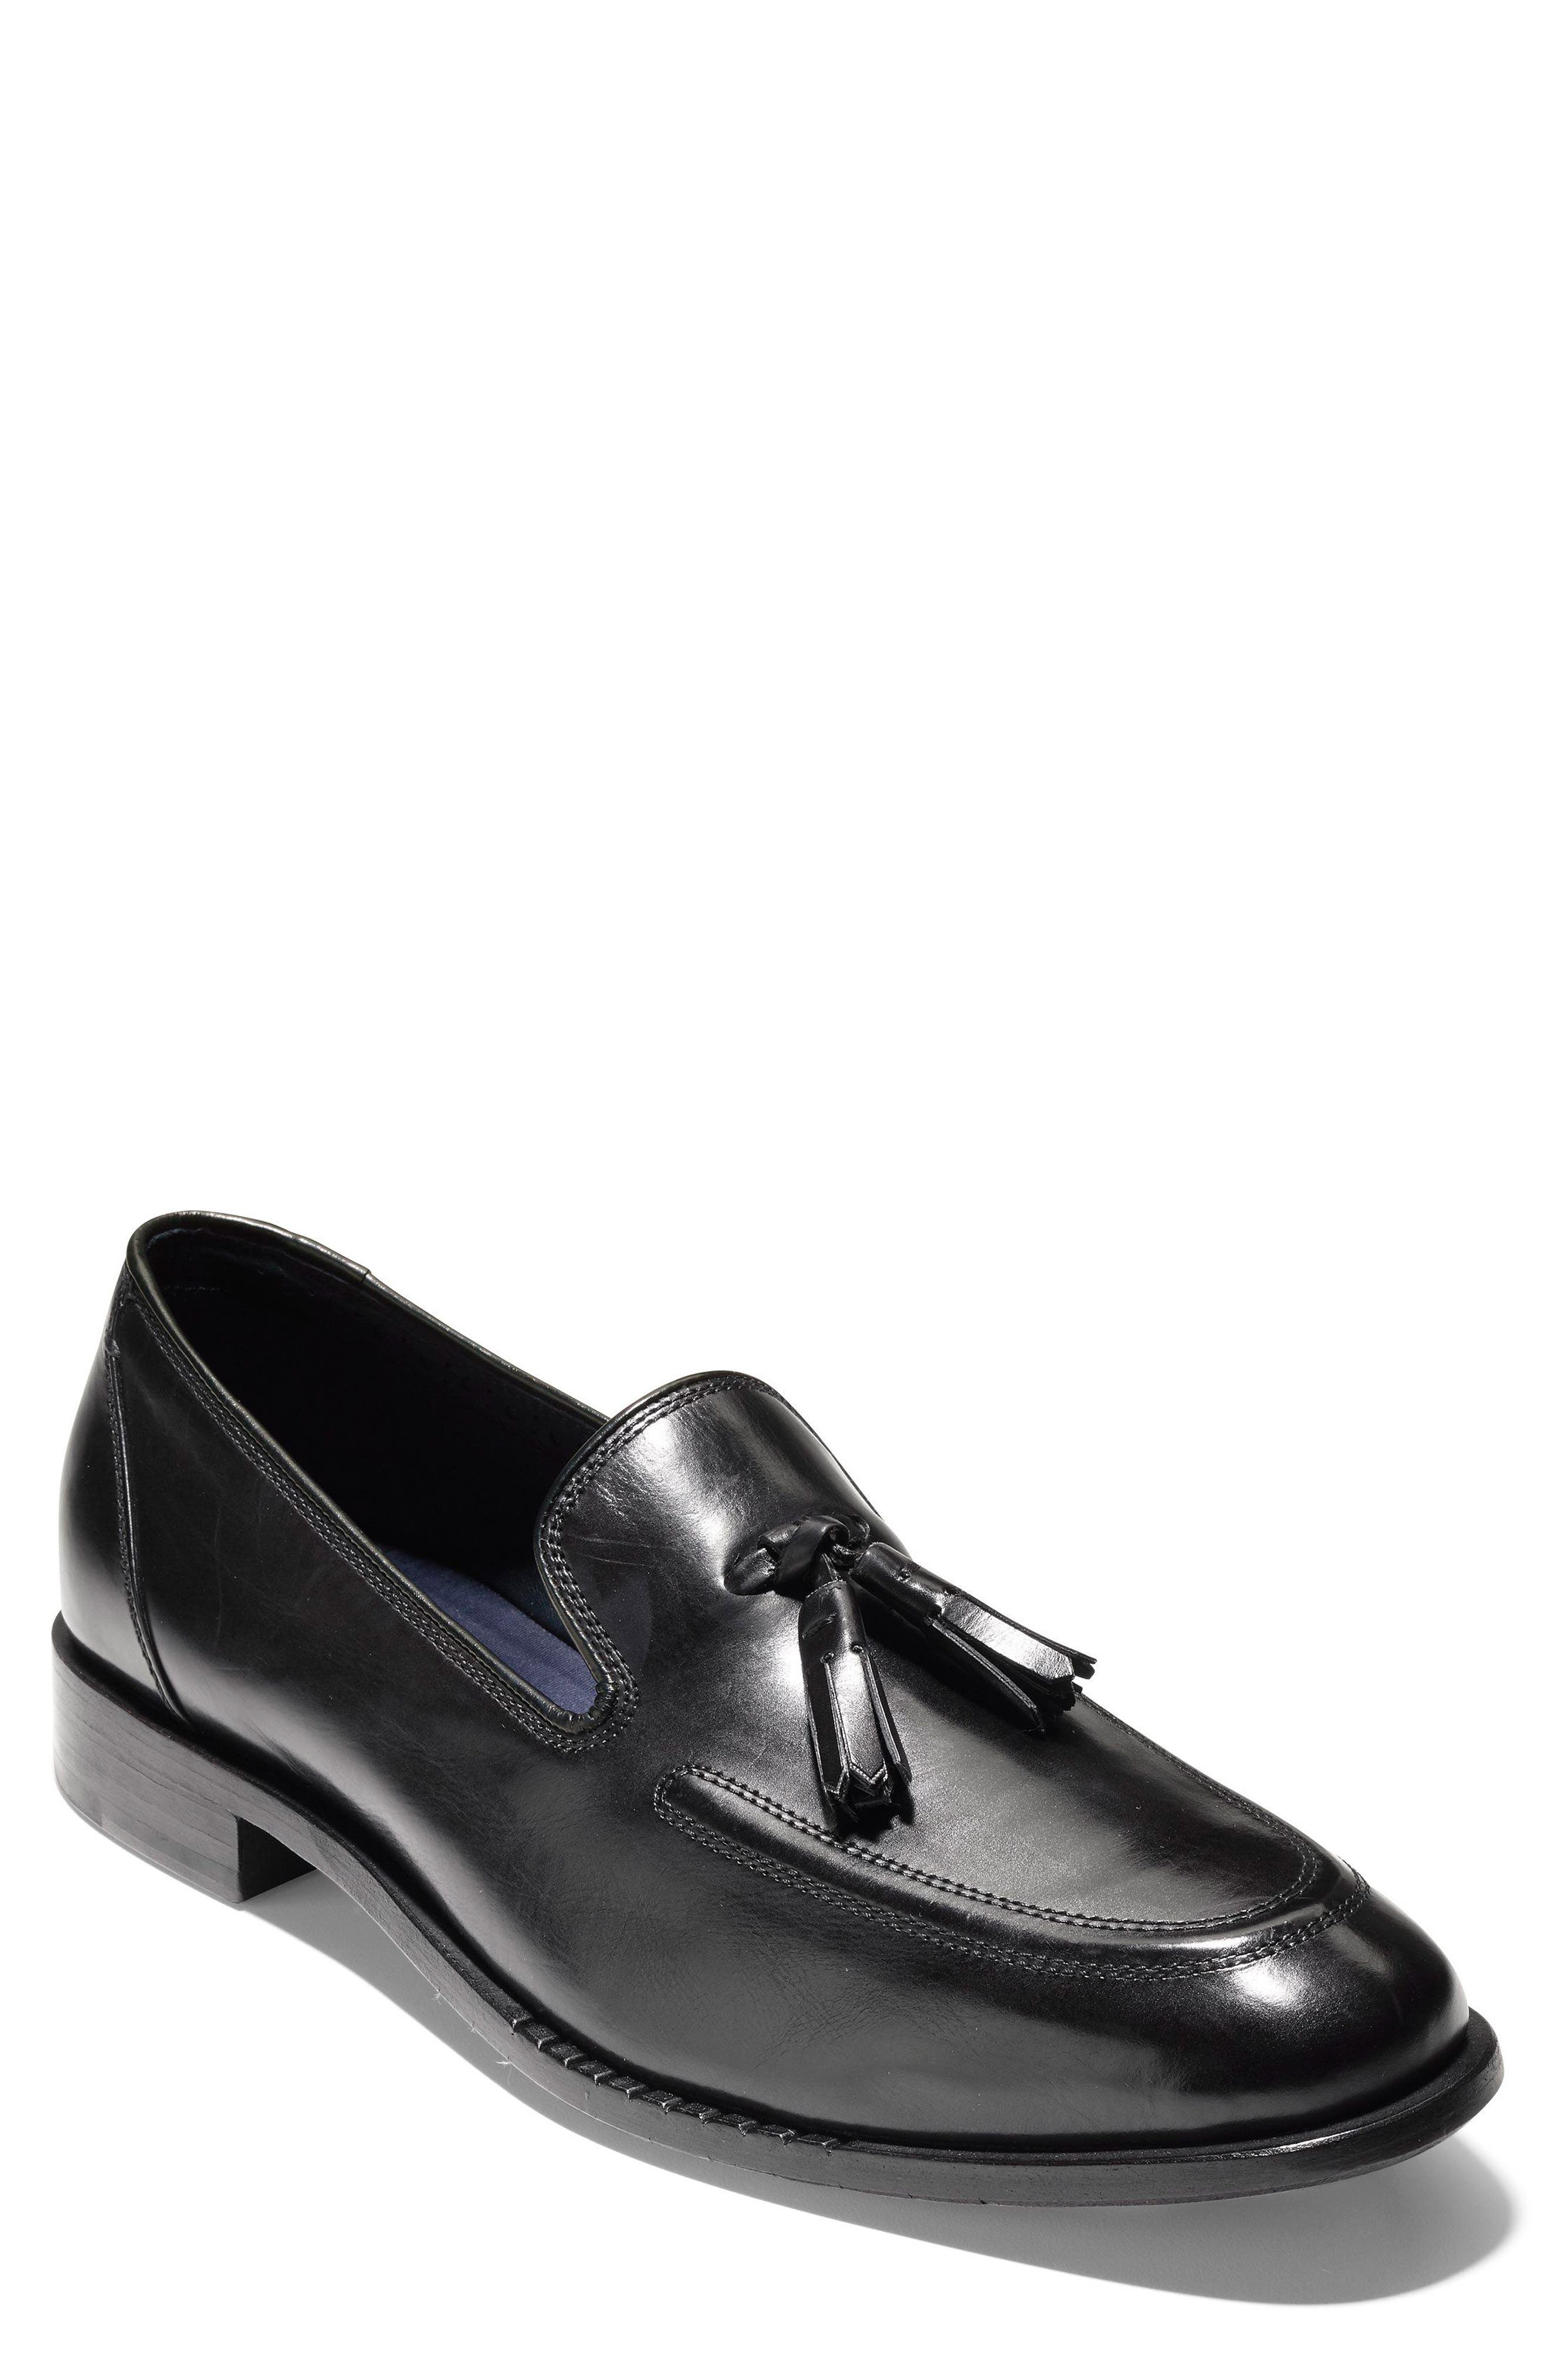 COLE HAAN,                             Washington Grand Tassel Loafer,                             Main thumbnail 1, color,                             001